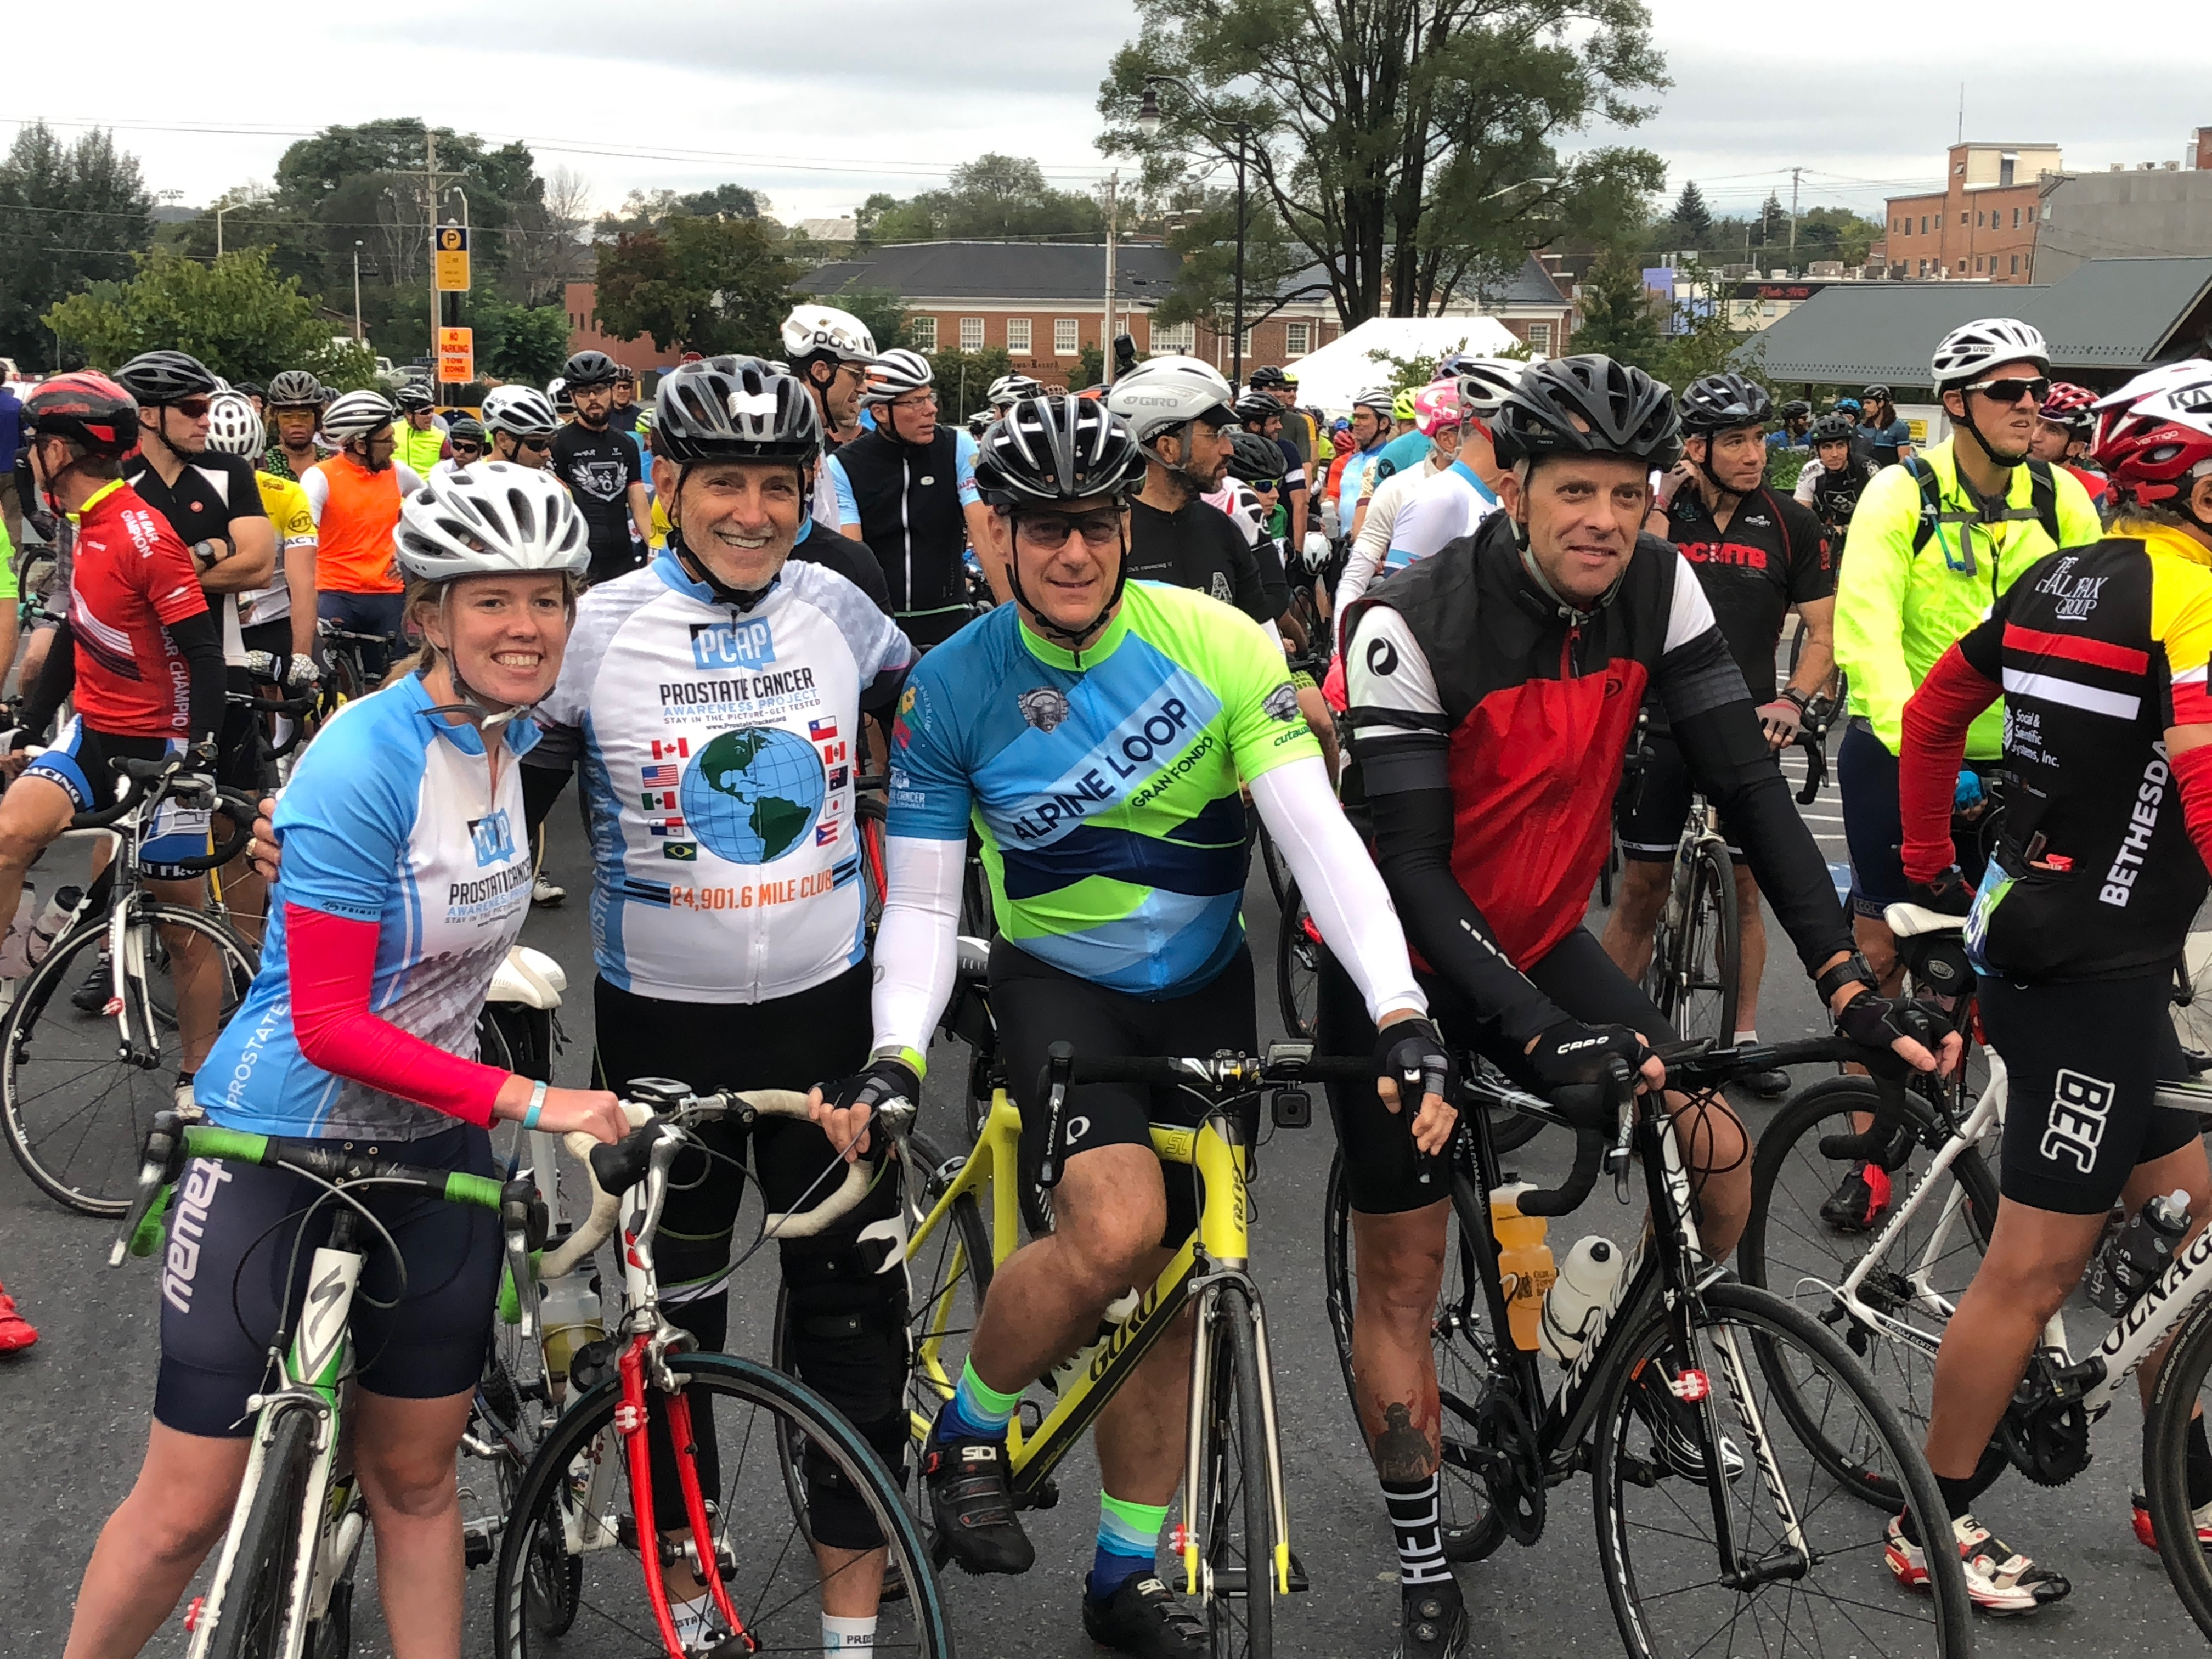 3ac9c0def The Cancer Journeys Foundation teamed up with pro cyclist Jeremiah Bishop  and the Bishop Family Foundation in 2010 to create ...